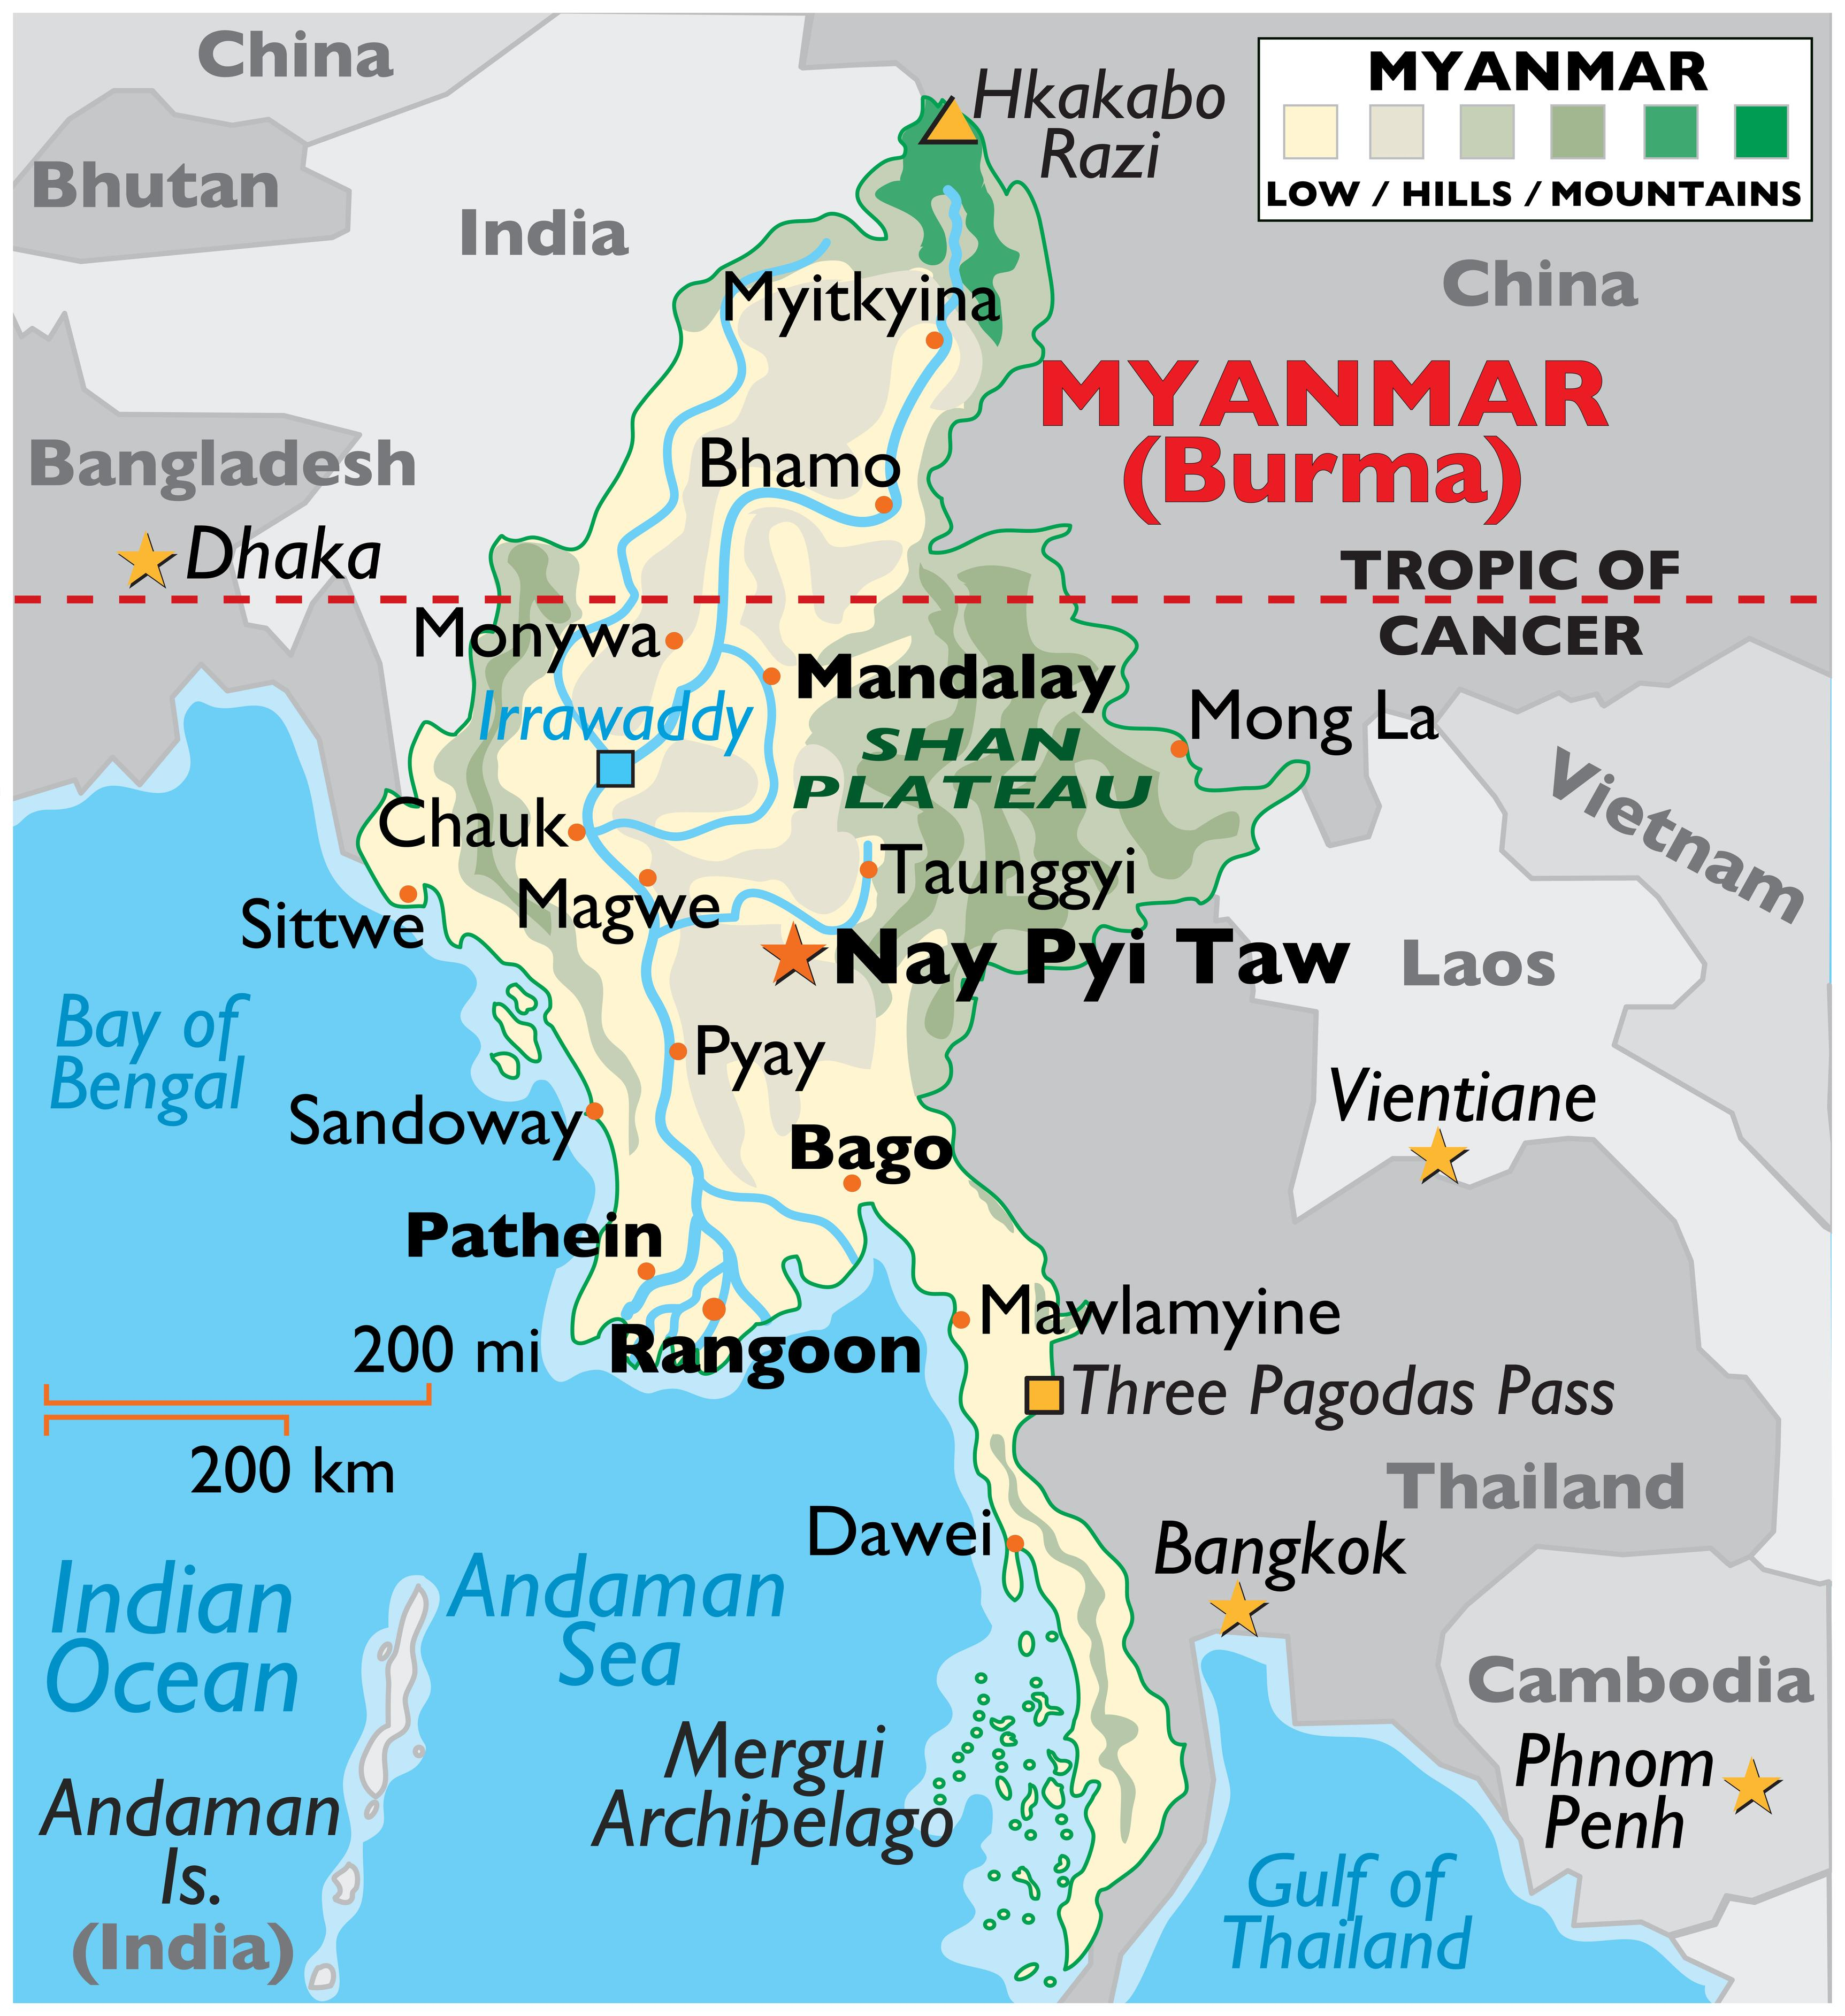 Physical Map of Myanmar showing state boundaries, relief, major rivers, highest point, important cities, Shan Plateau, and more